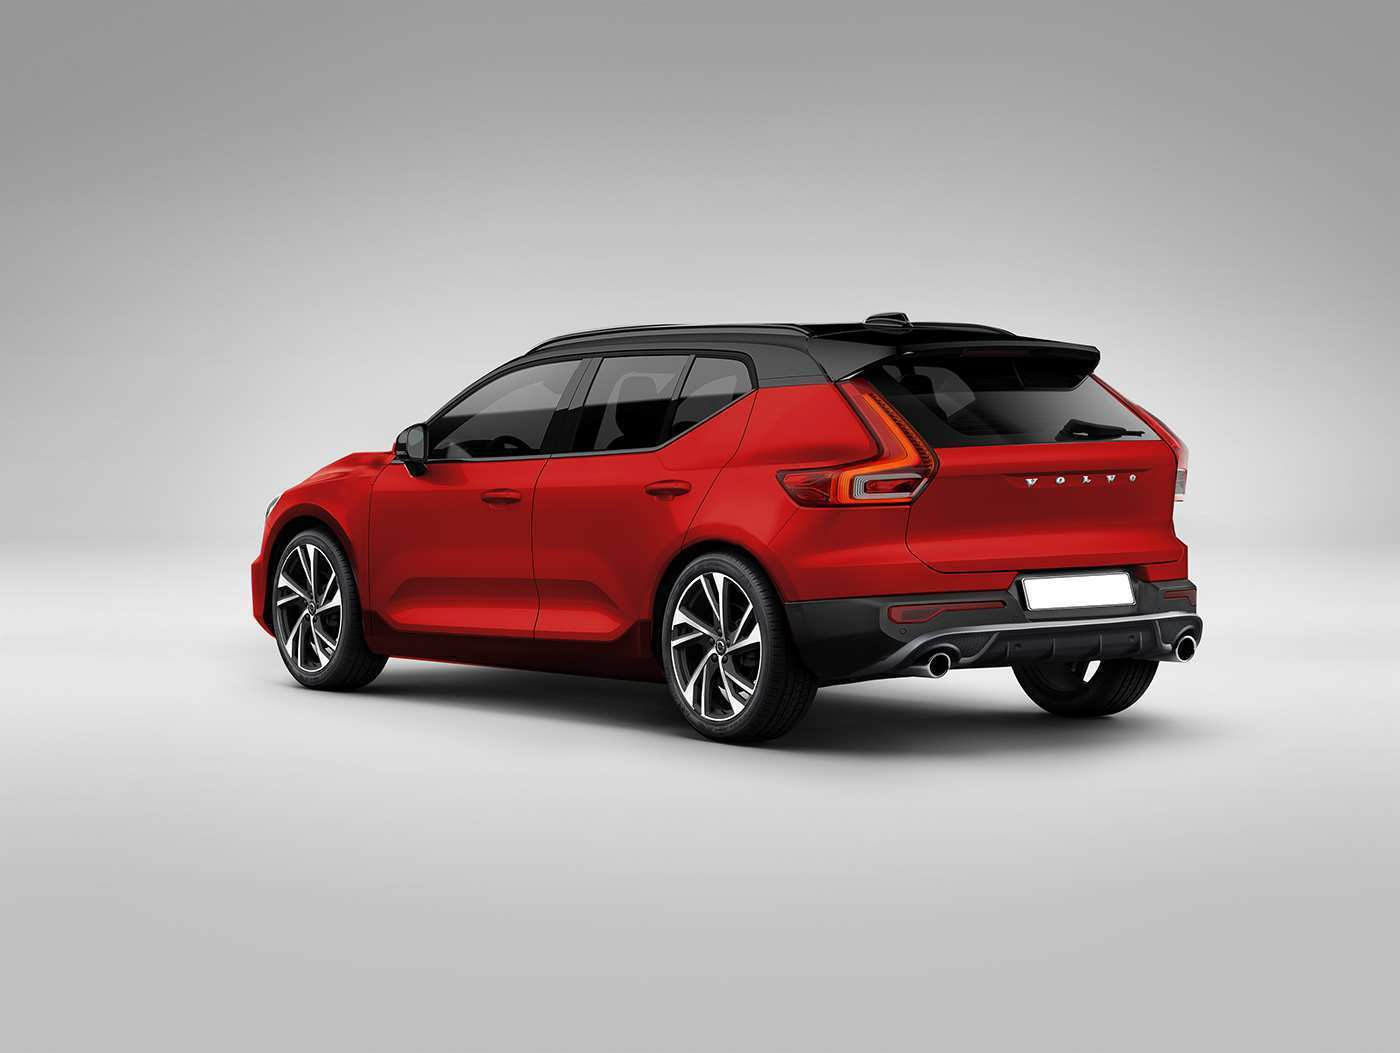 84 All New Volvo 2020 V40 Price and Review for Volvo 2020 V40